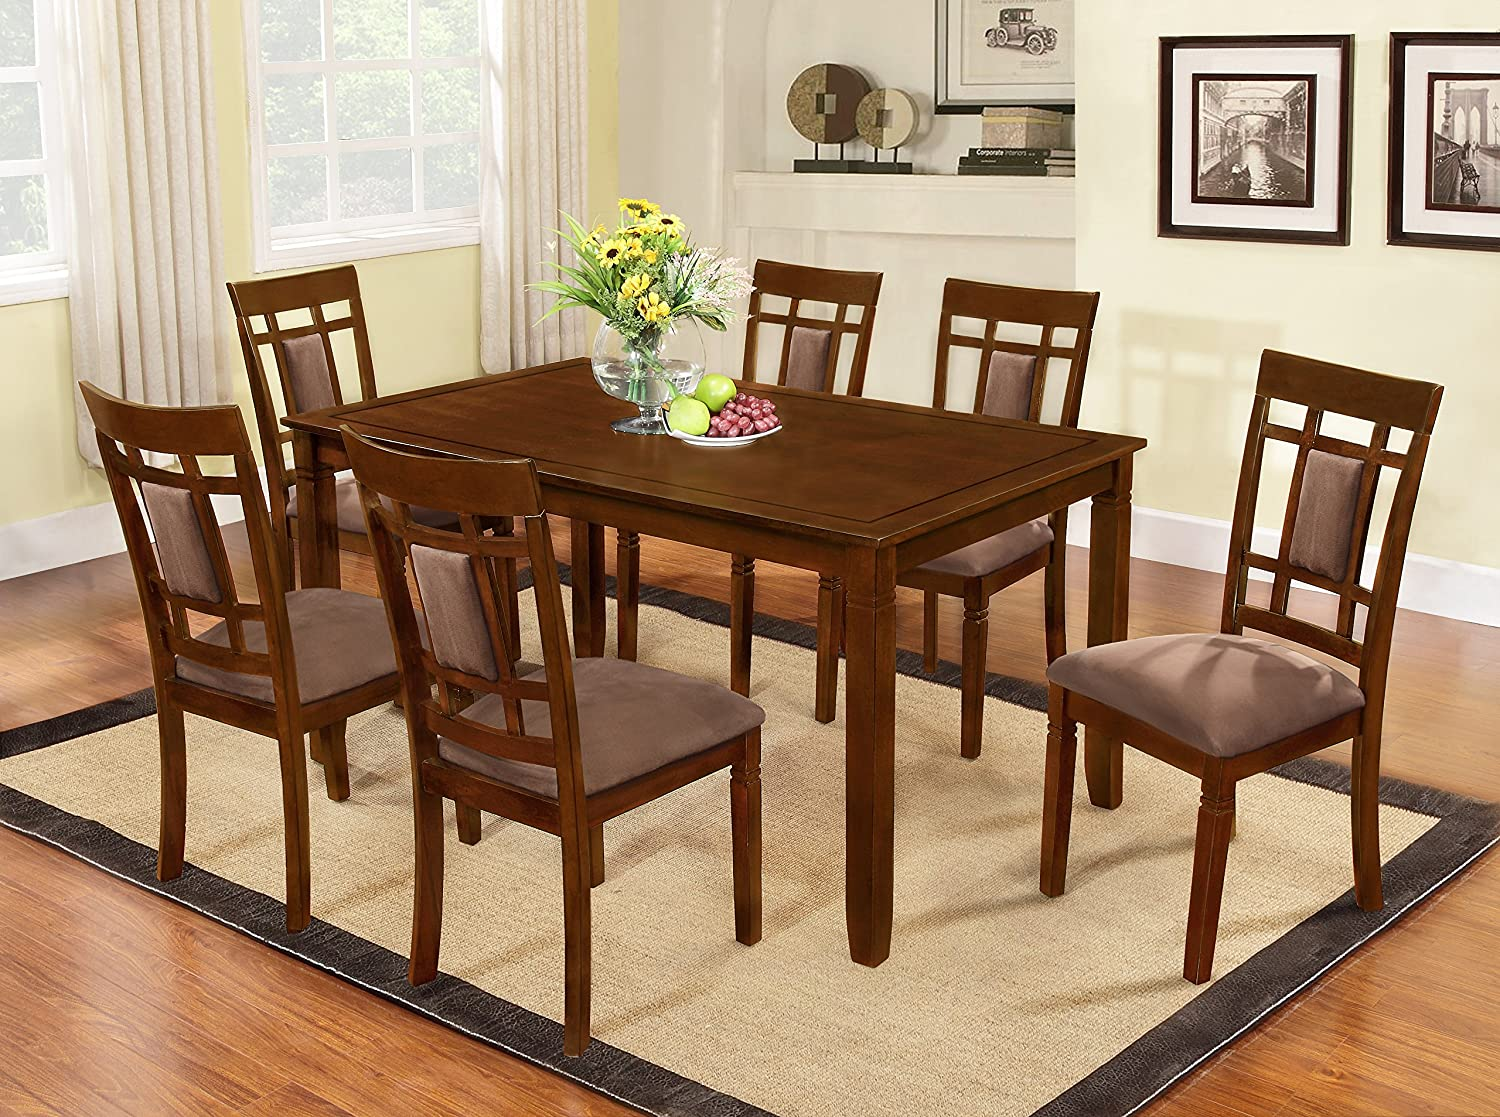 Amazon the room style 7 piece cherry finish solid wood dining amazon the room style 7 piece cherry finish solid wood dining table set table chair sets workwithnaturefo